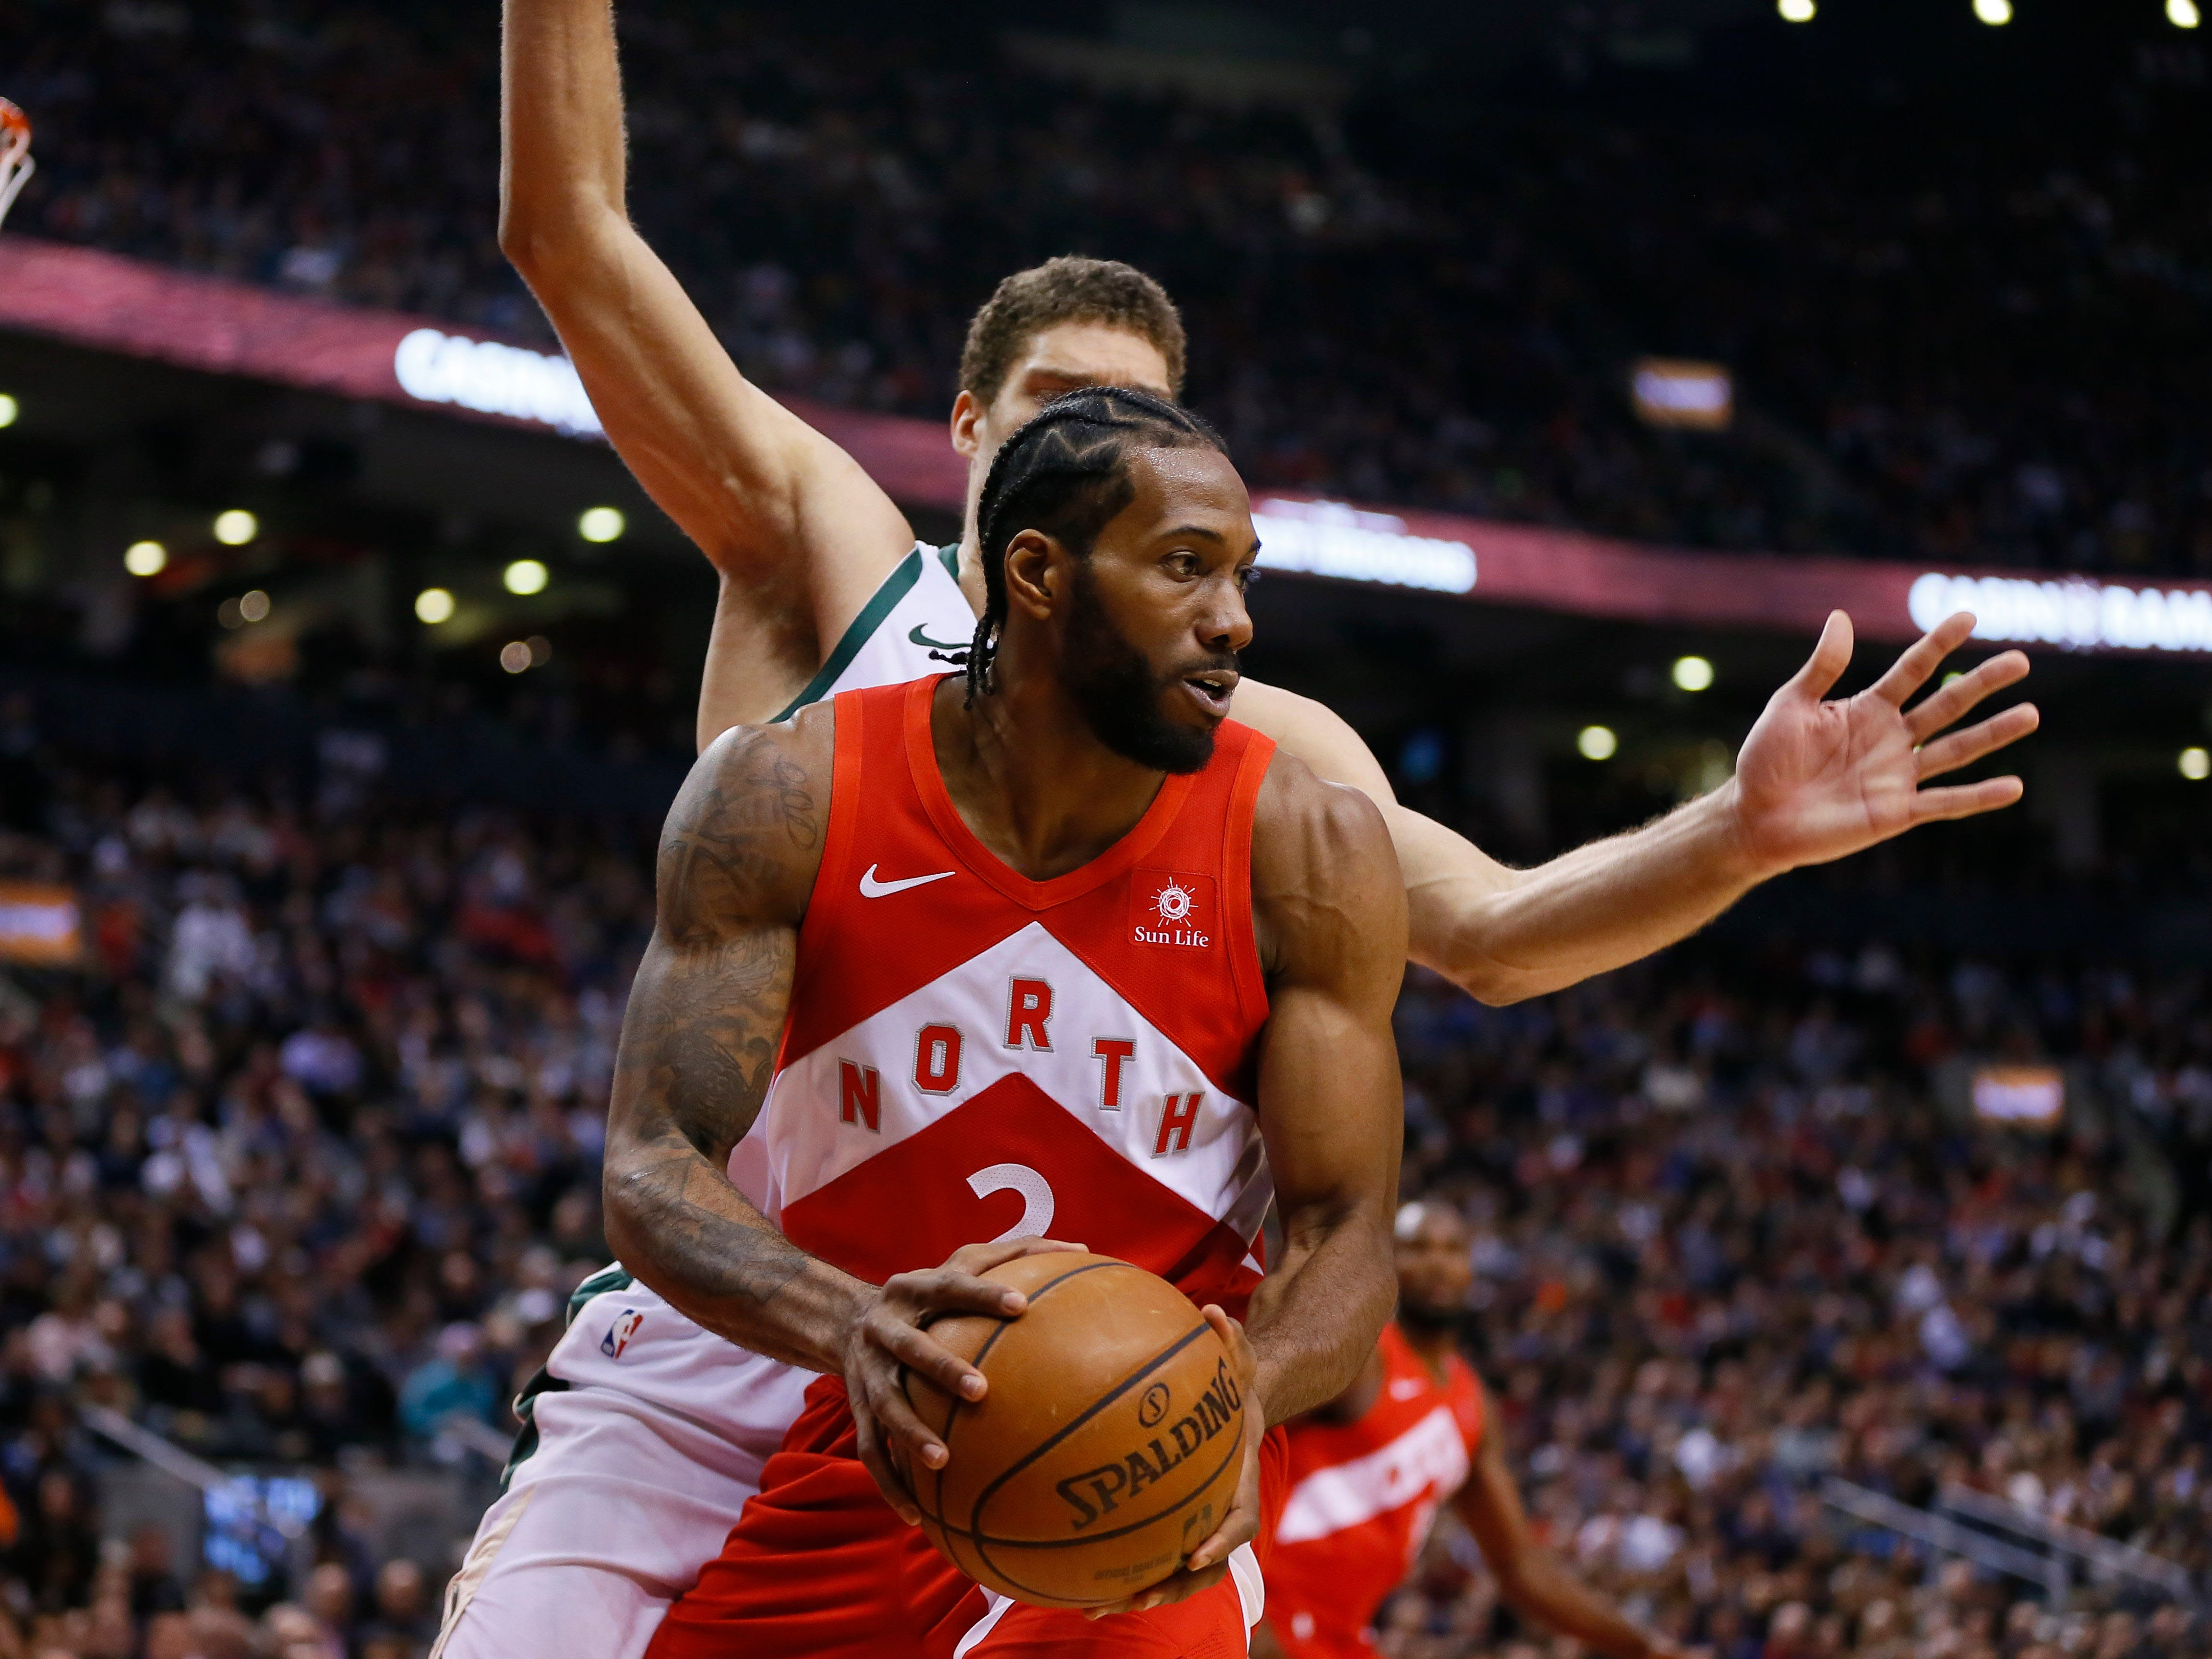 Raptors forward Kawhi Leonard ponders his next move as he's guarded by Bucks center Brook Lopez in the first half Thursday night.